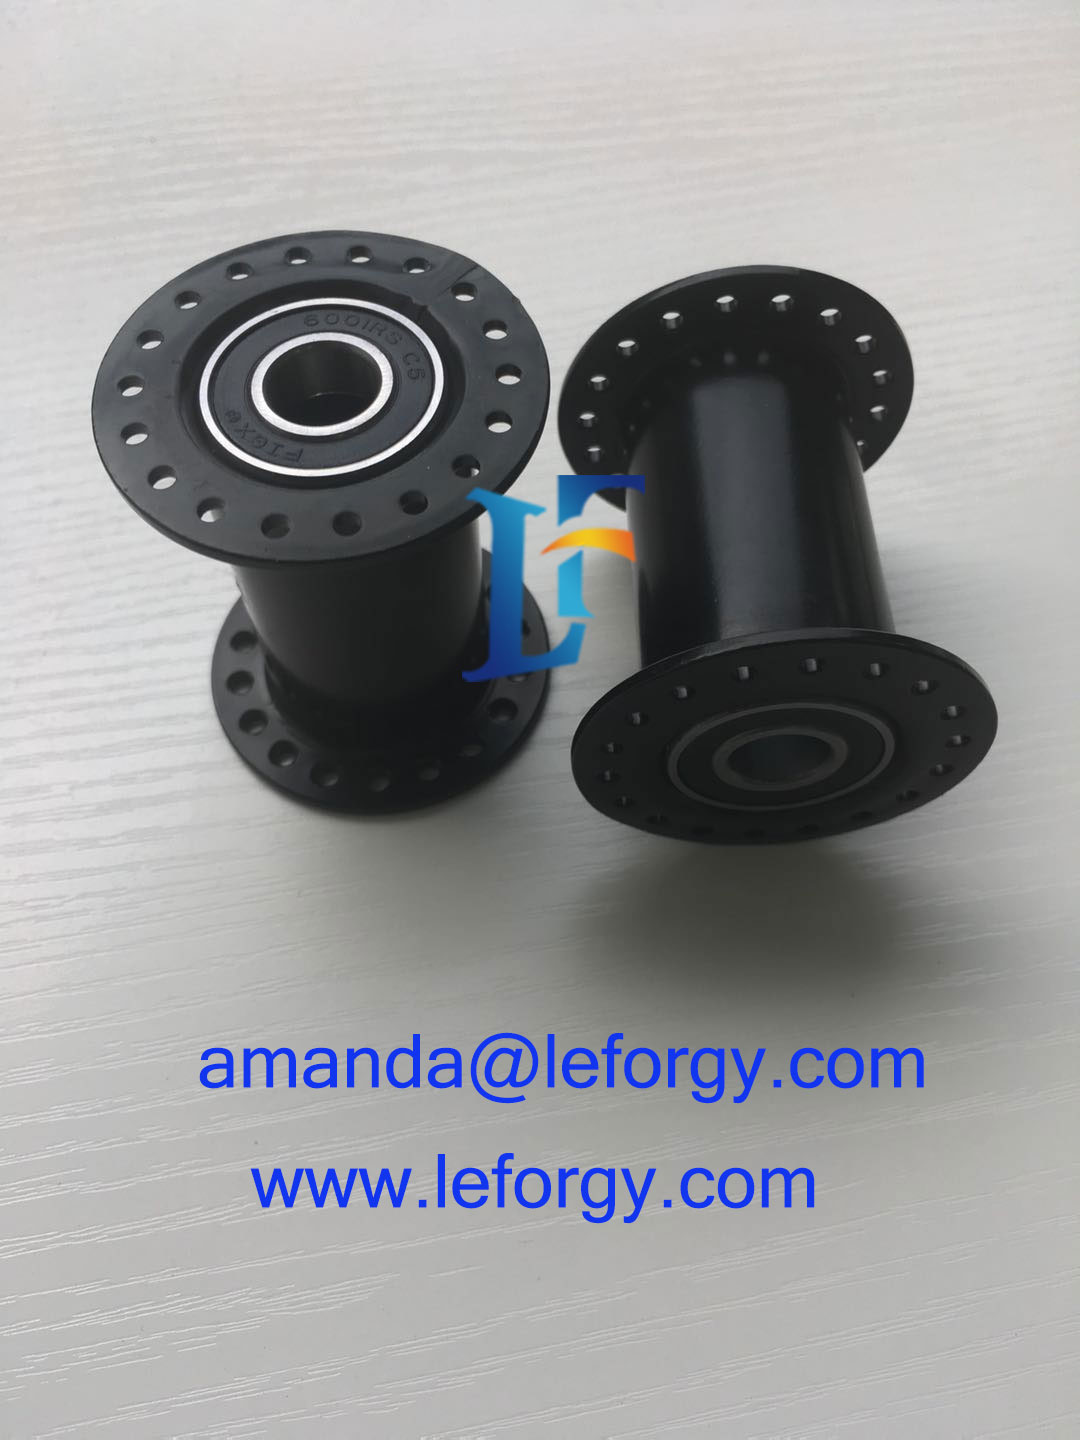 Customized Bycicle/Electric Vehicle/Car Metal Hardware Parts from China Factory